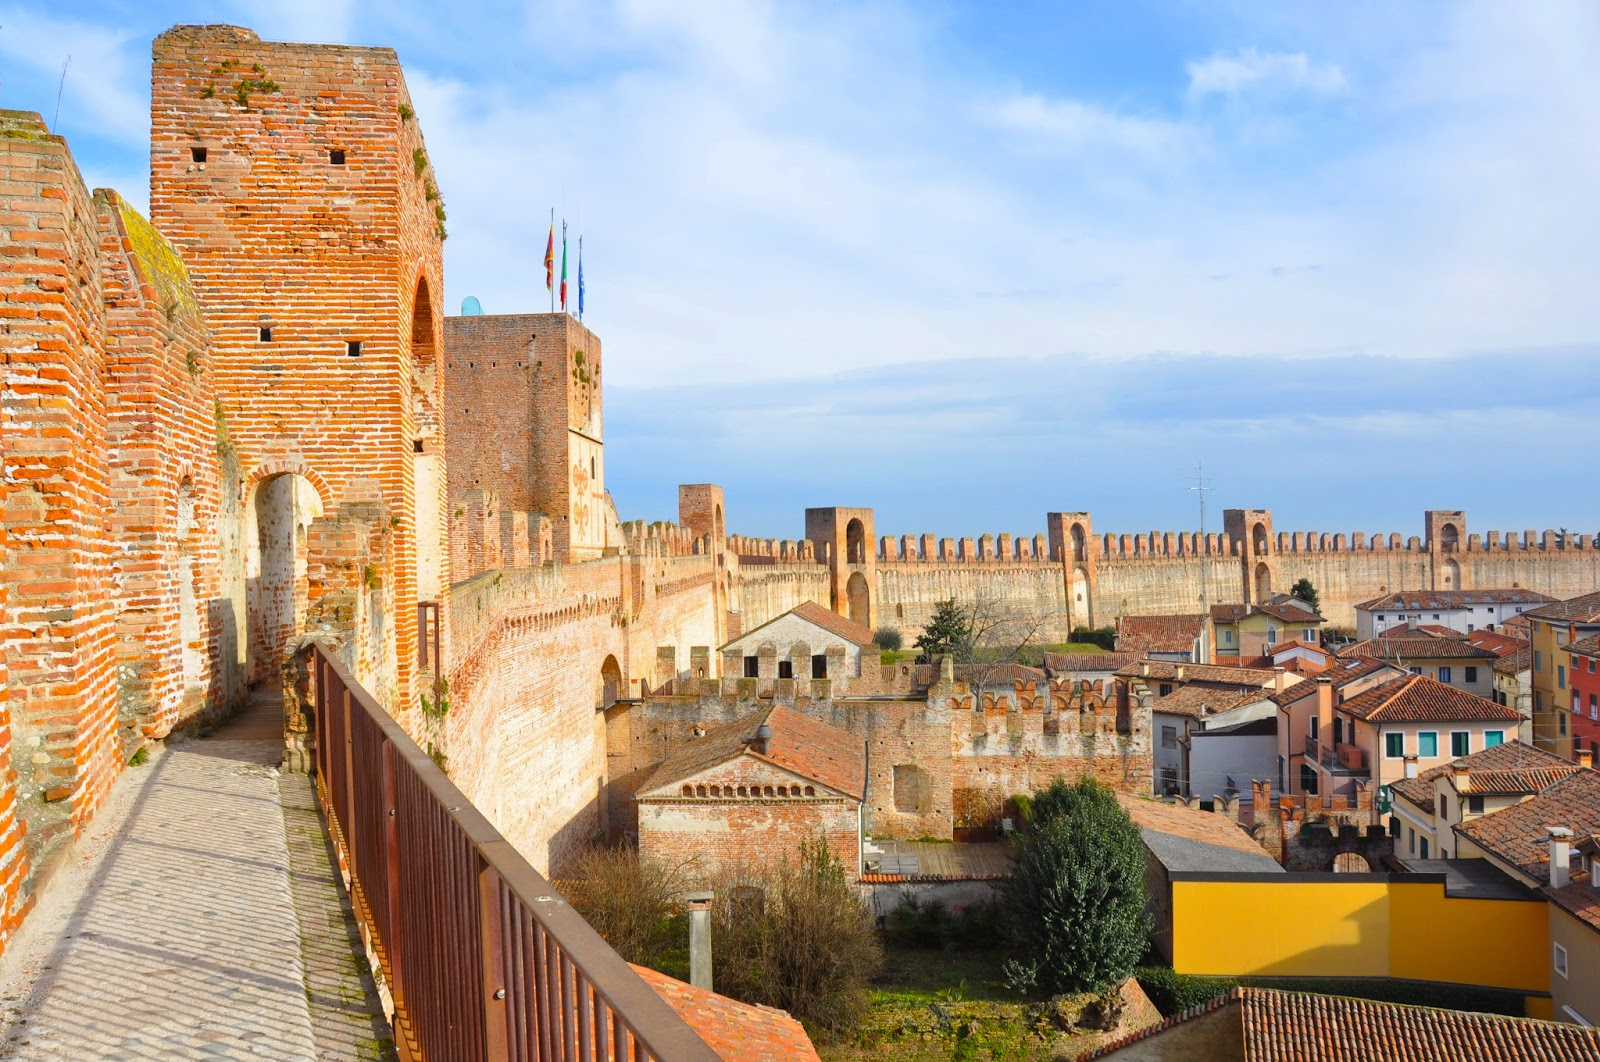 The wall surrounding the medieval town of Cittadella in Veneto, Italy